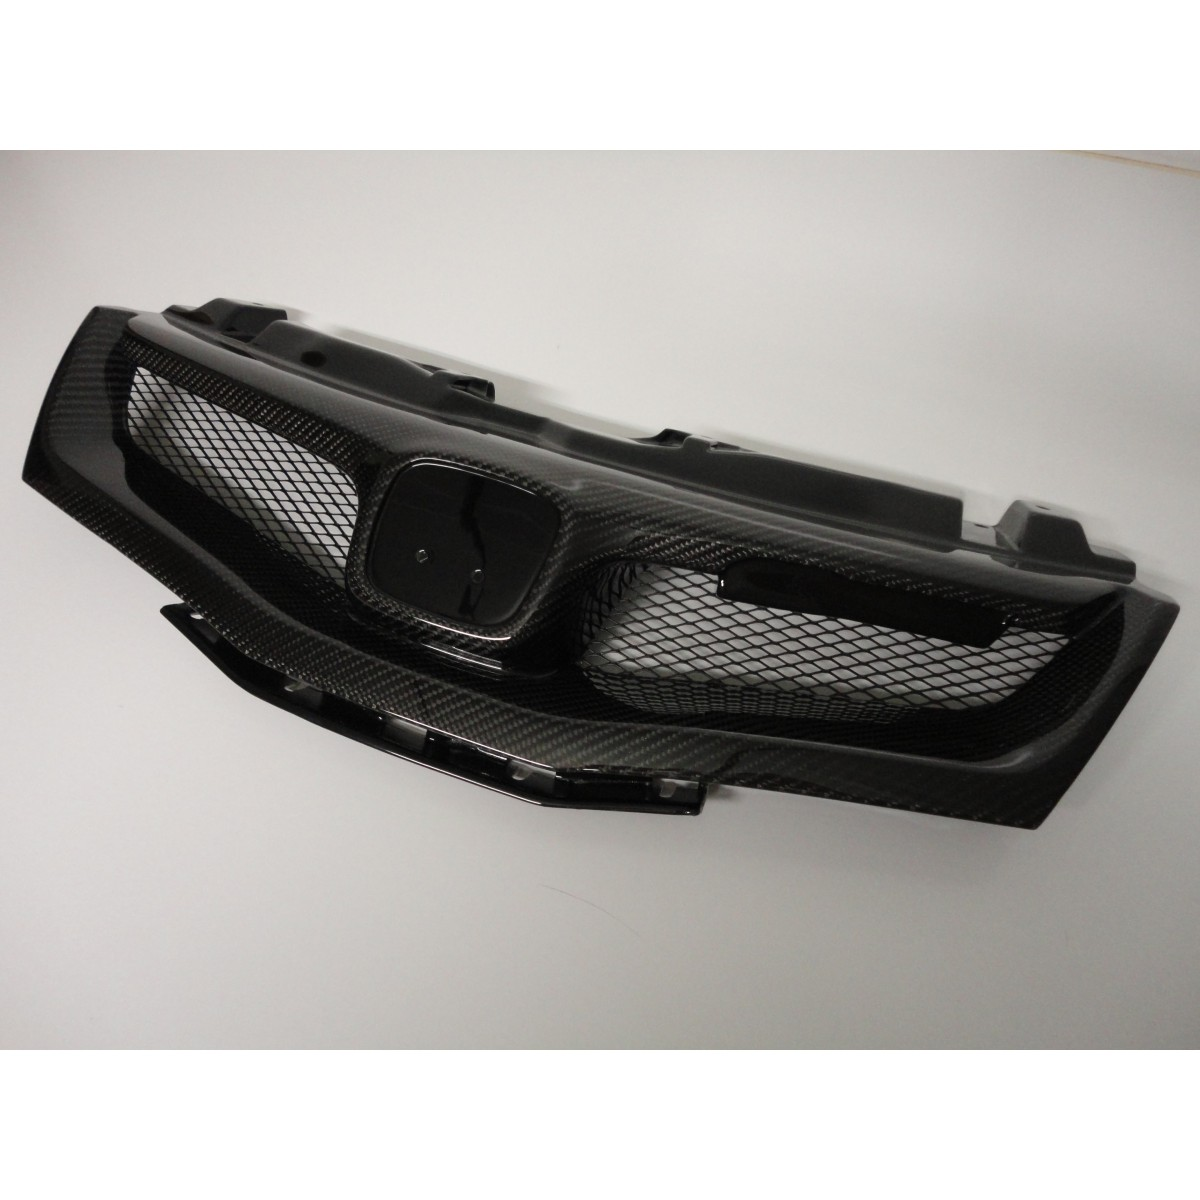 honda civic fn m style grill carbon   body styling   civic